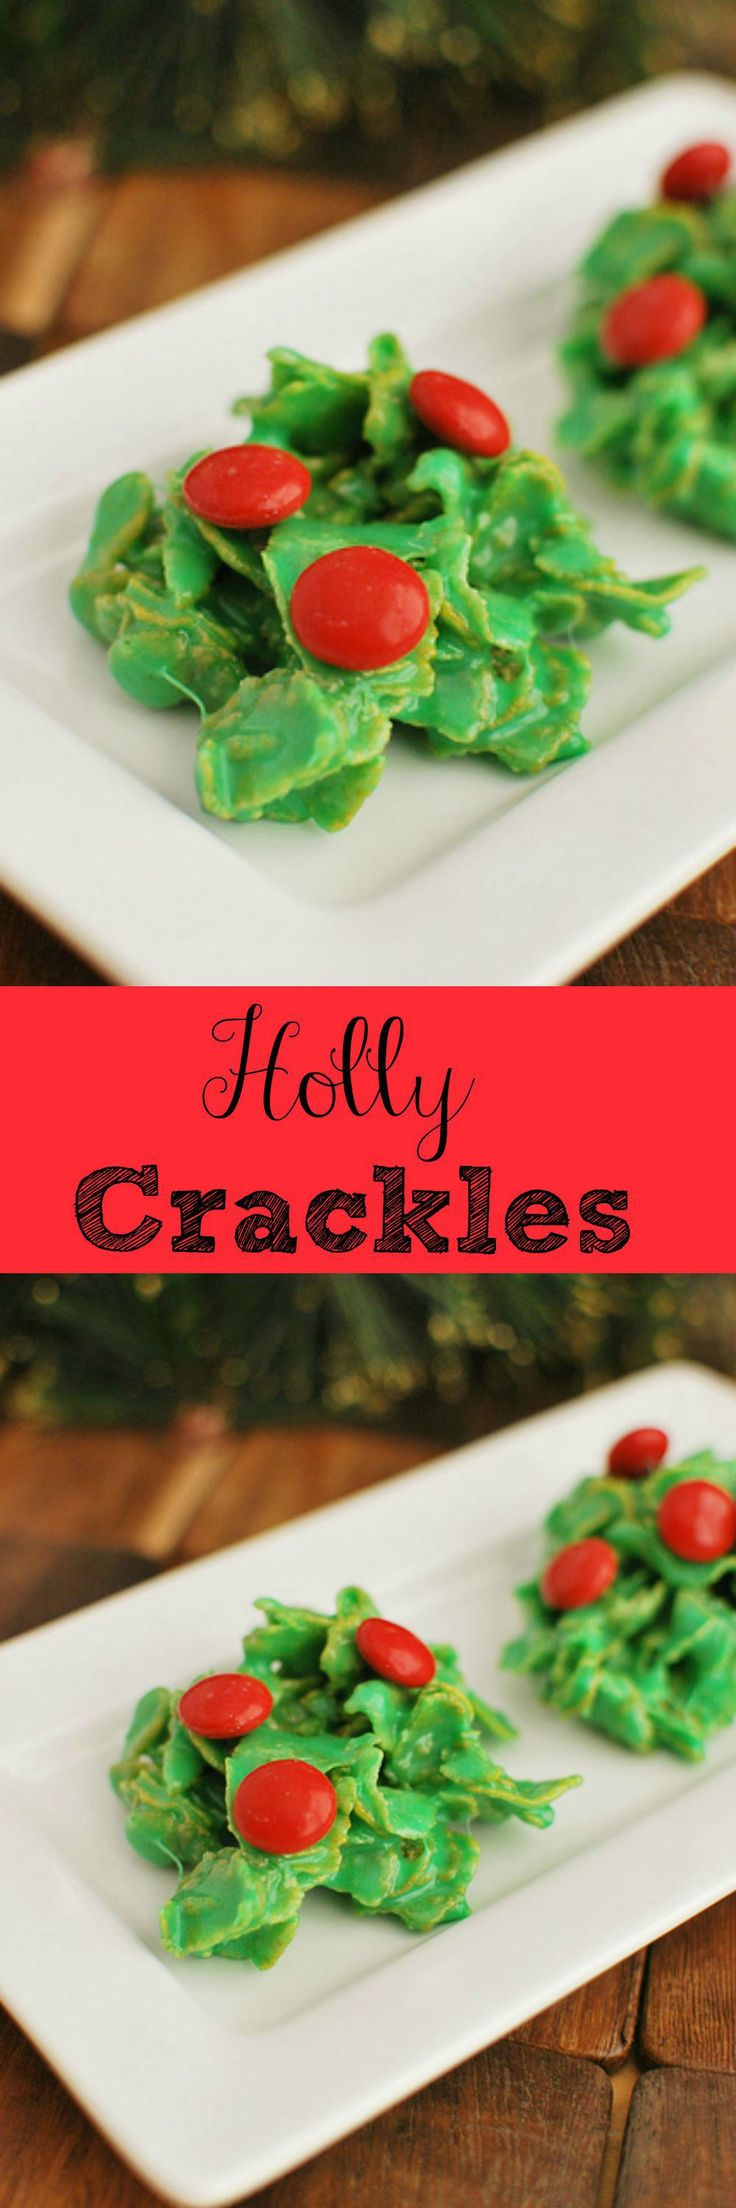 Holly Crackles - cute Christmas cookies! And so easy! Just 5 ingredients!: http://fakeginger.com/2013/12/11/holly-crackles/